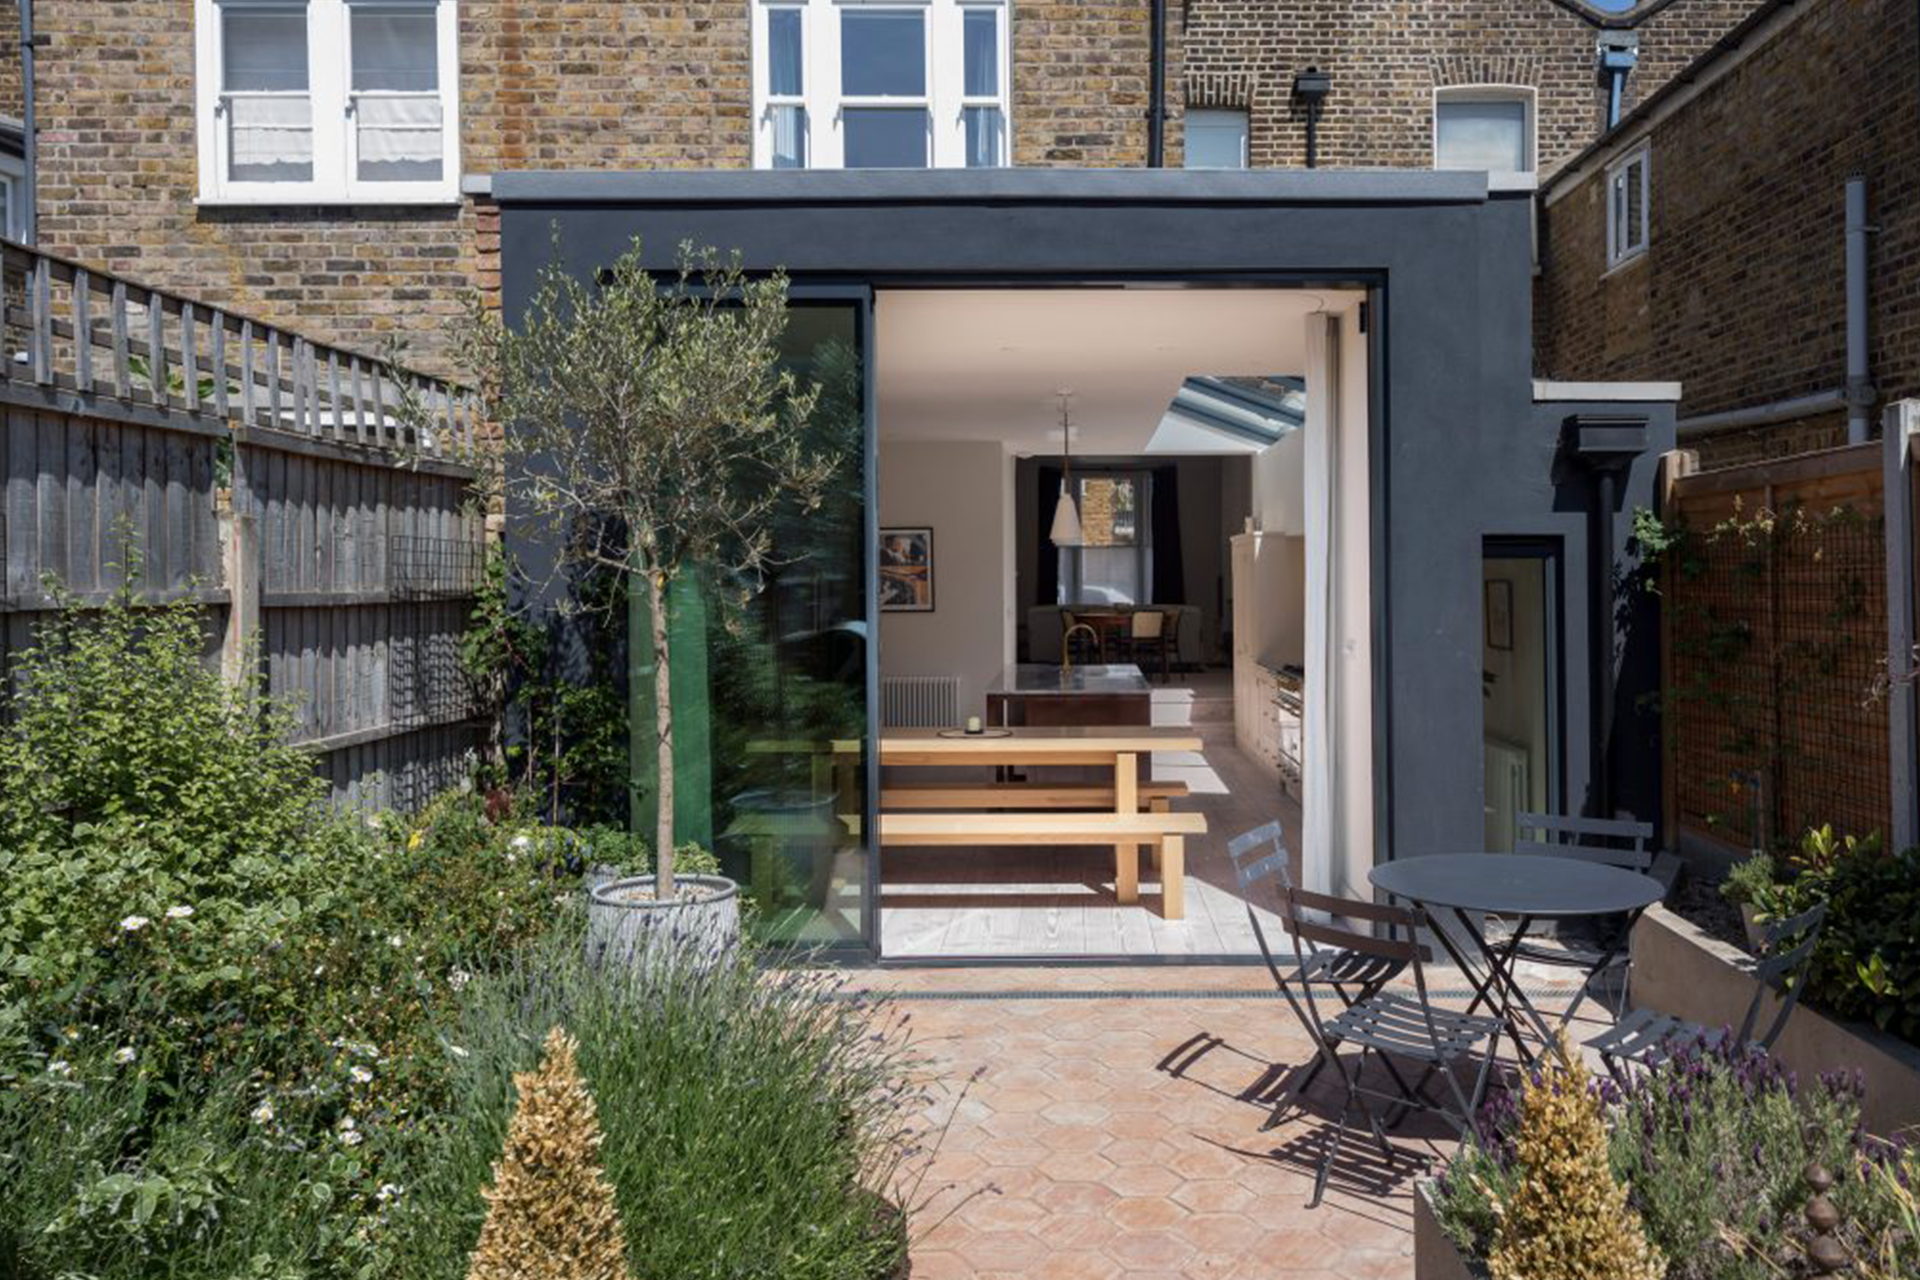 A residential building project in London